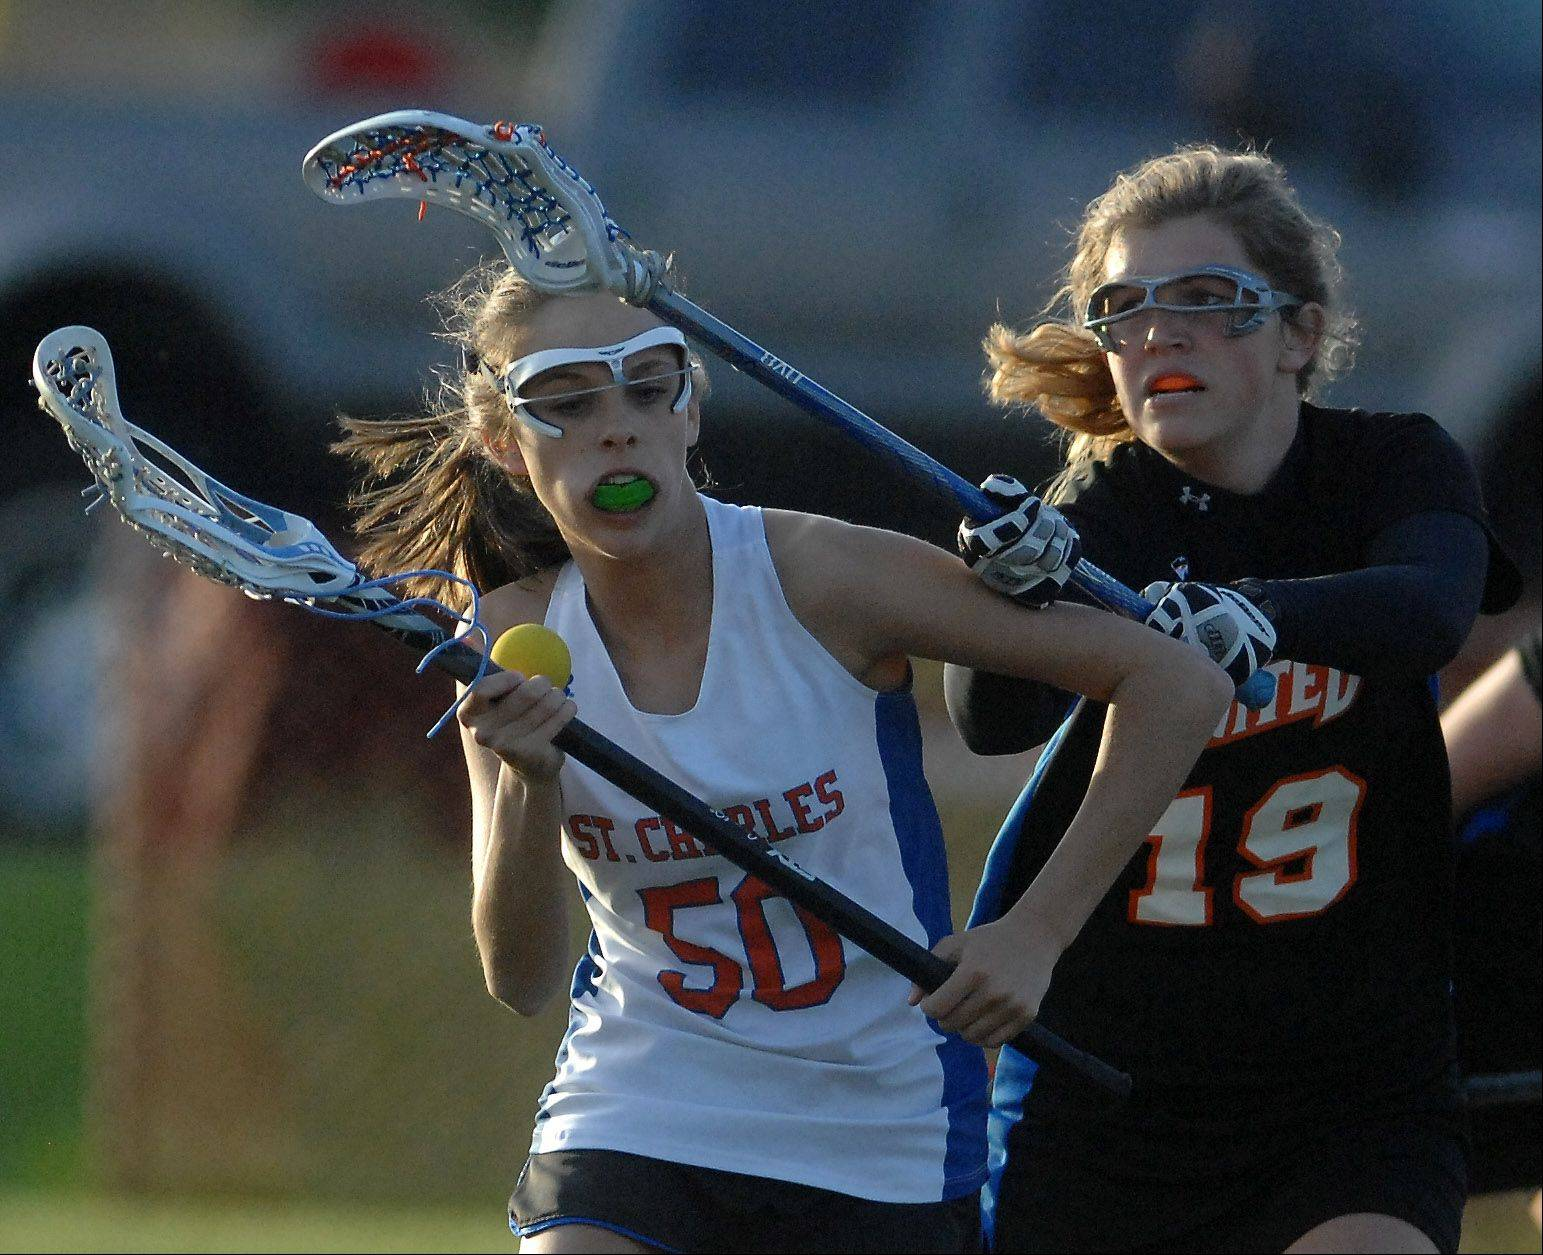 Images from the St. Charles co-op vs. Wheaton United girls lacrosse match Thursday, April 12, 2012.